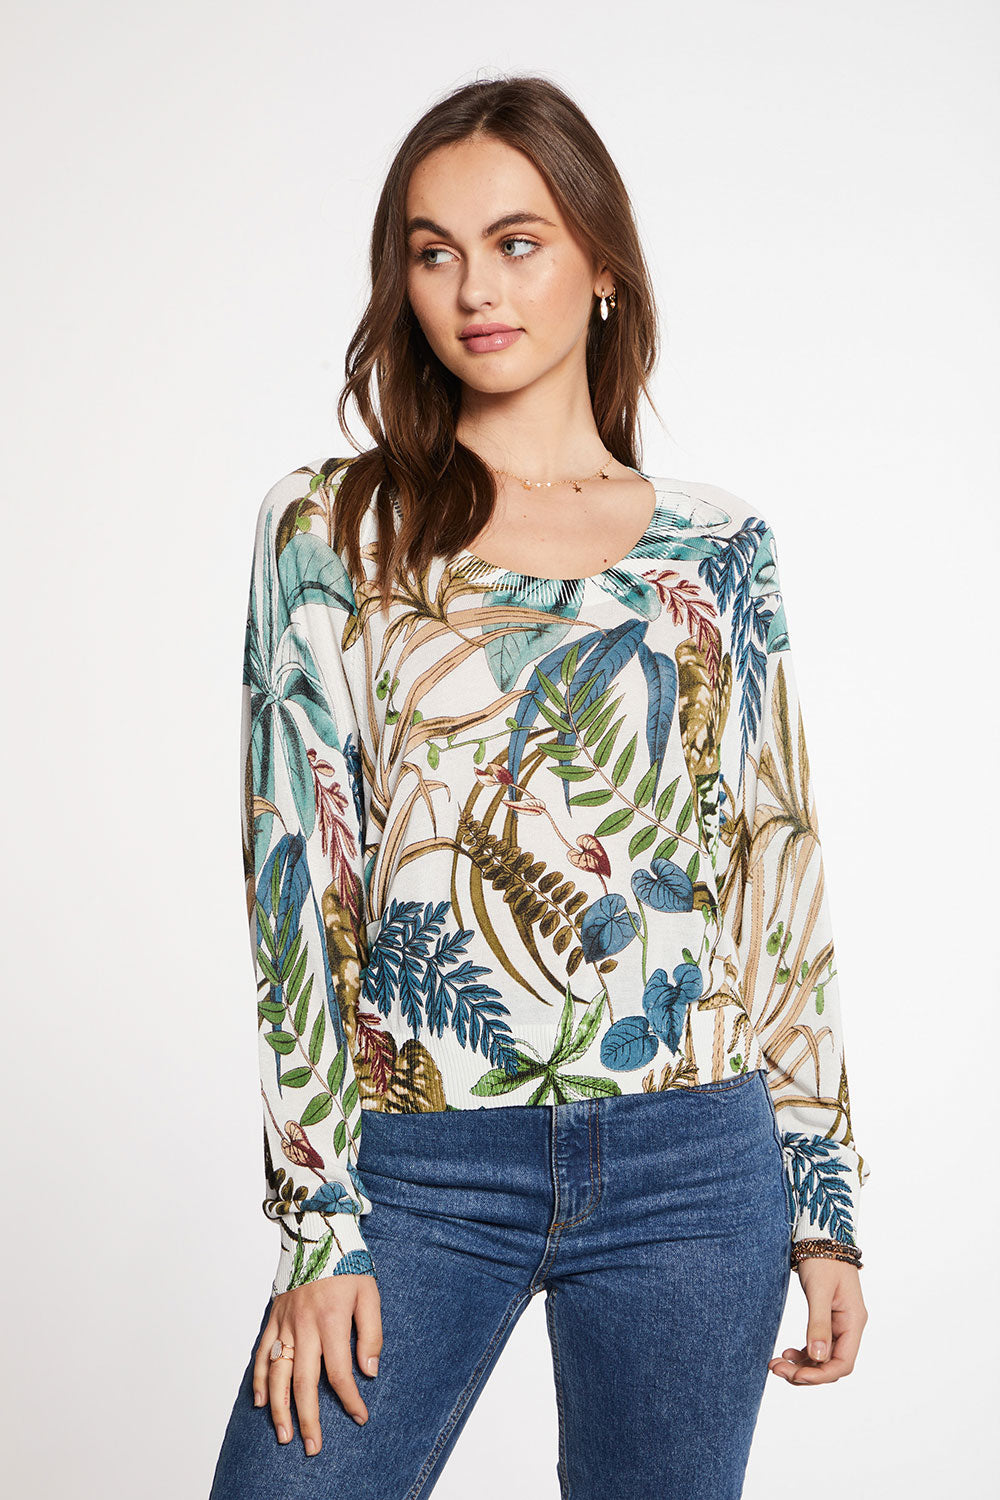 Viscose Blend Botanical Print Oversized Long Sleeve Raglan Pullover Sweater